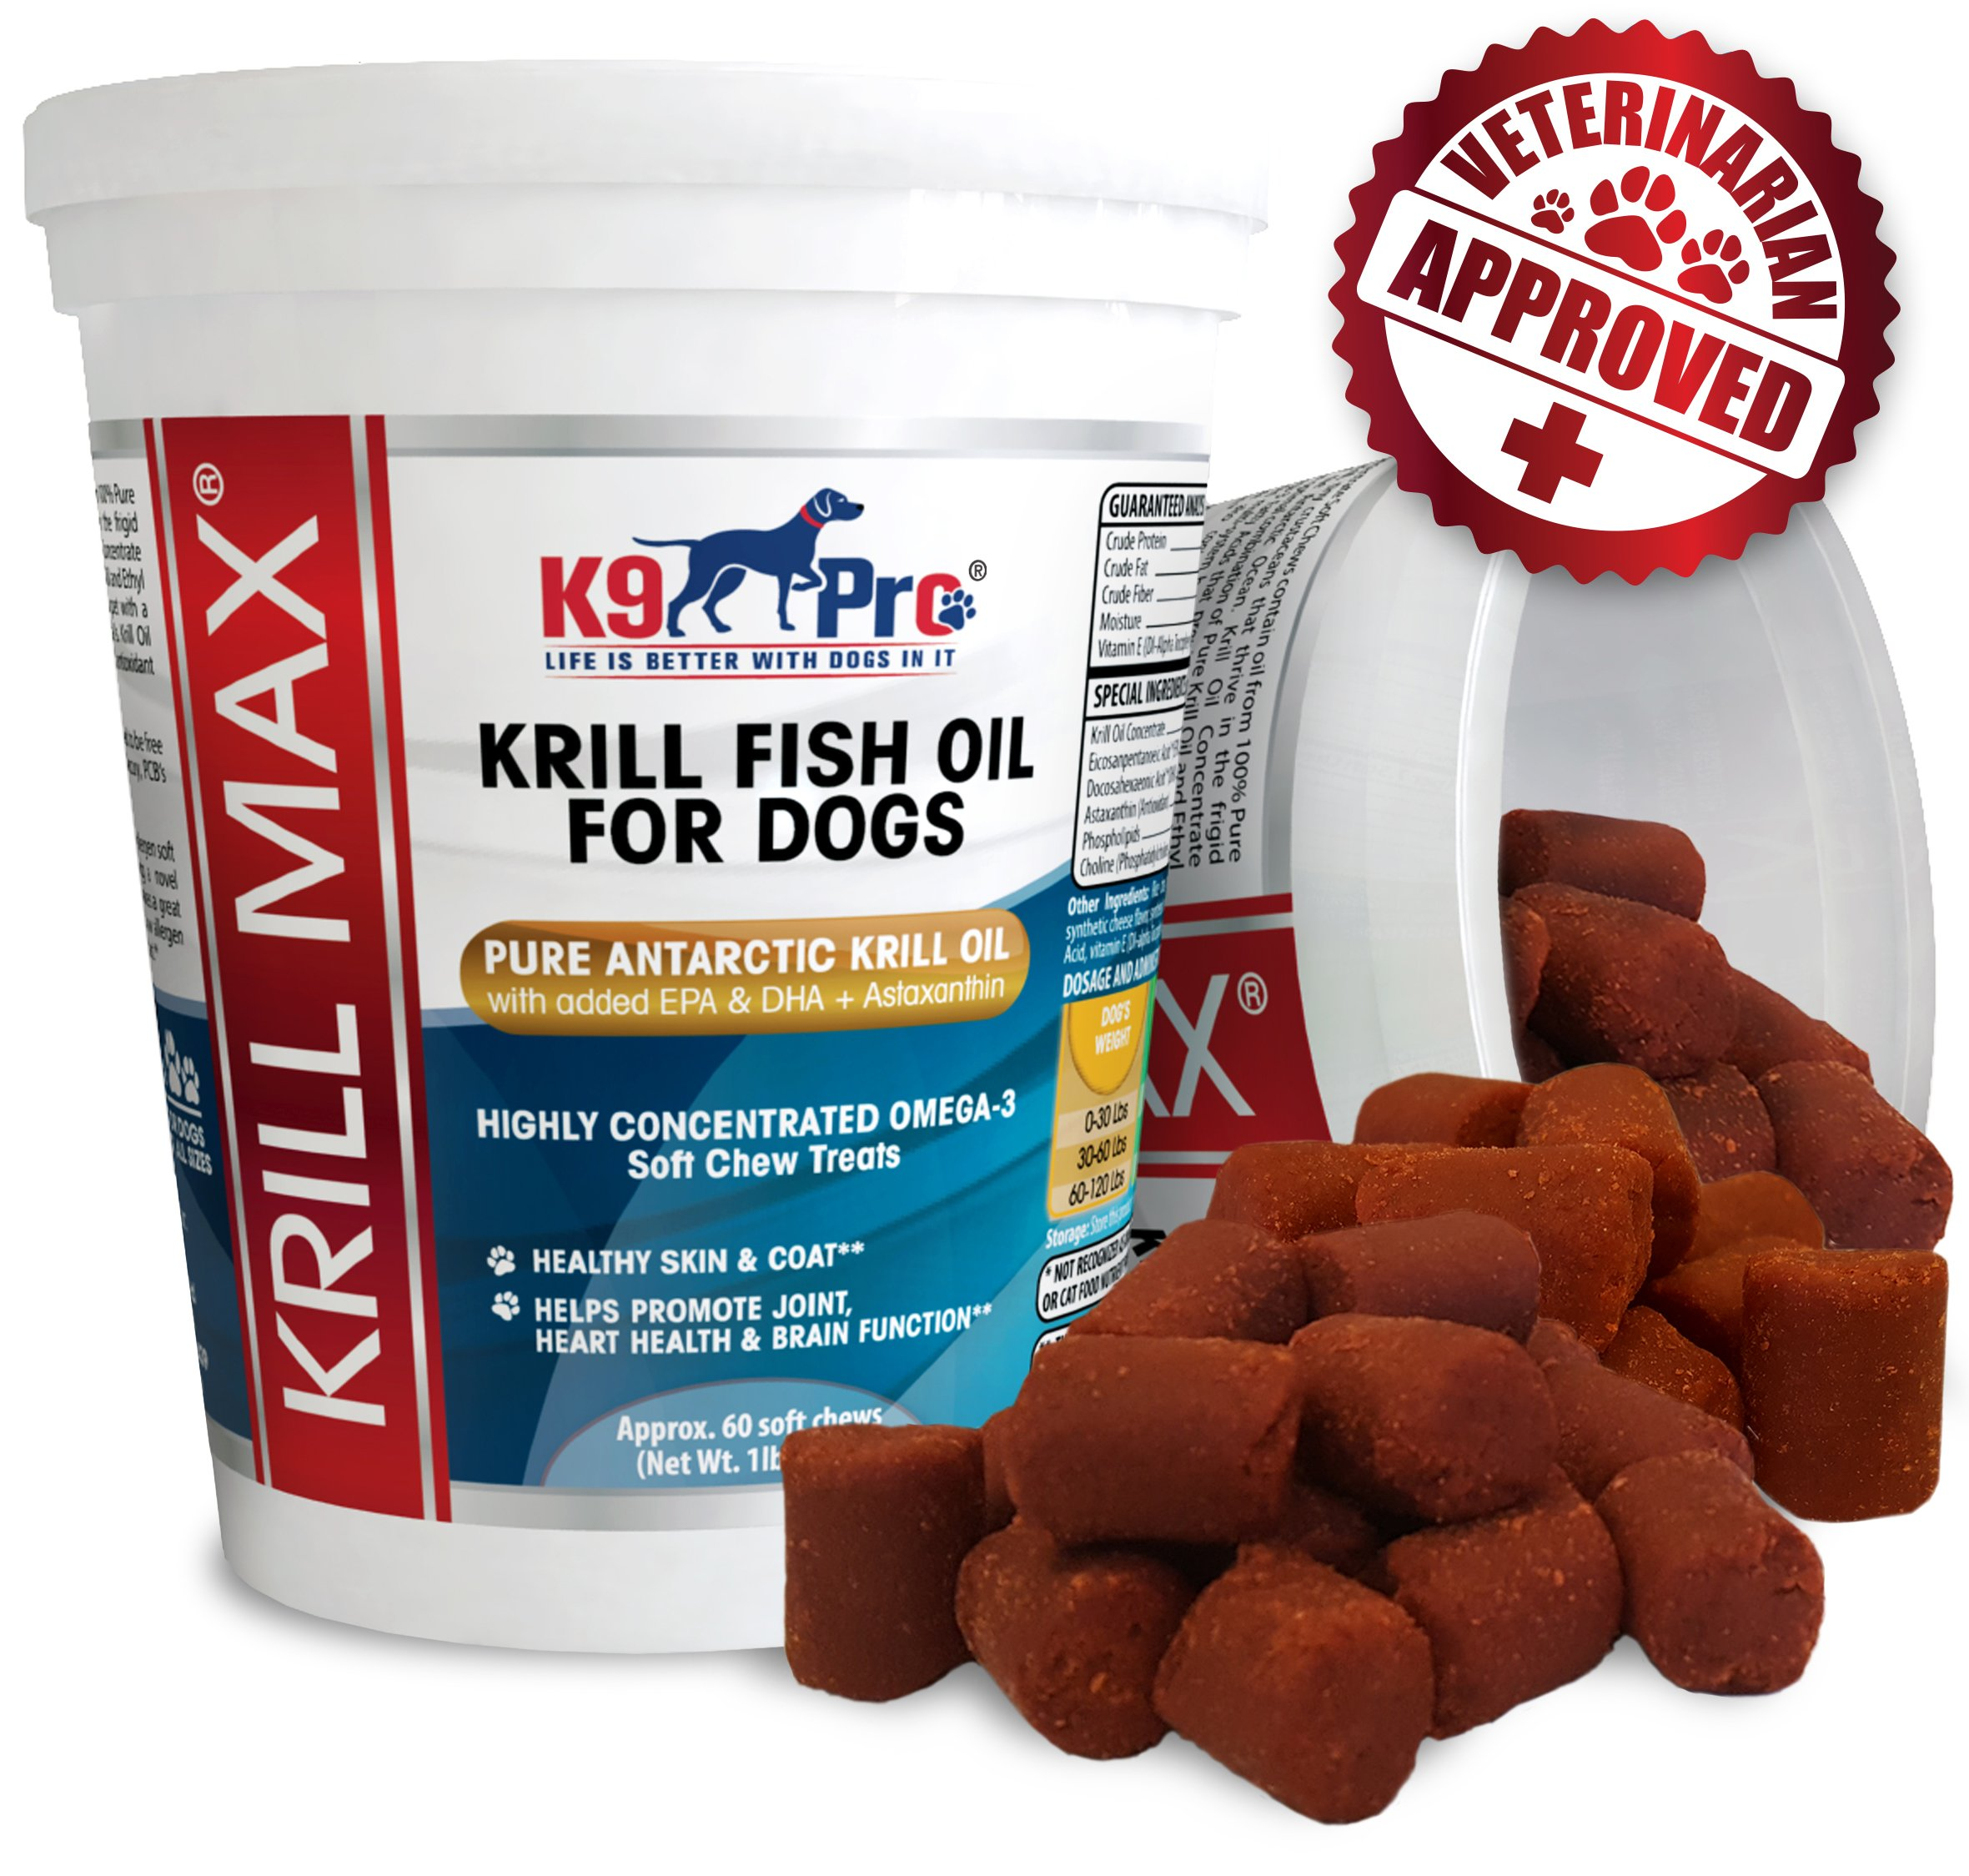 Krill Max Fish Oil for Dogs - Soft Moist Tasty 350mg Omega 3 for Dogs - Best Dog Joint Supplement with DHA EPA Plus Astaxanthin and Vitamin E Supplements - for Hip Joints Skin and Coat